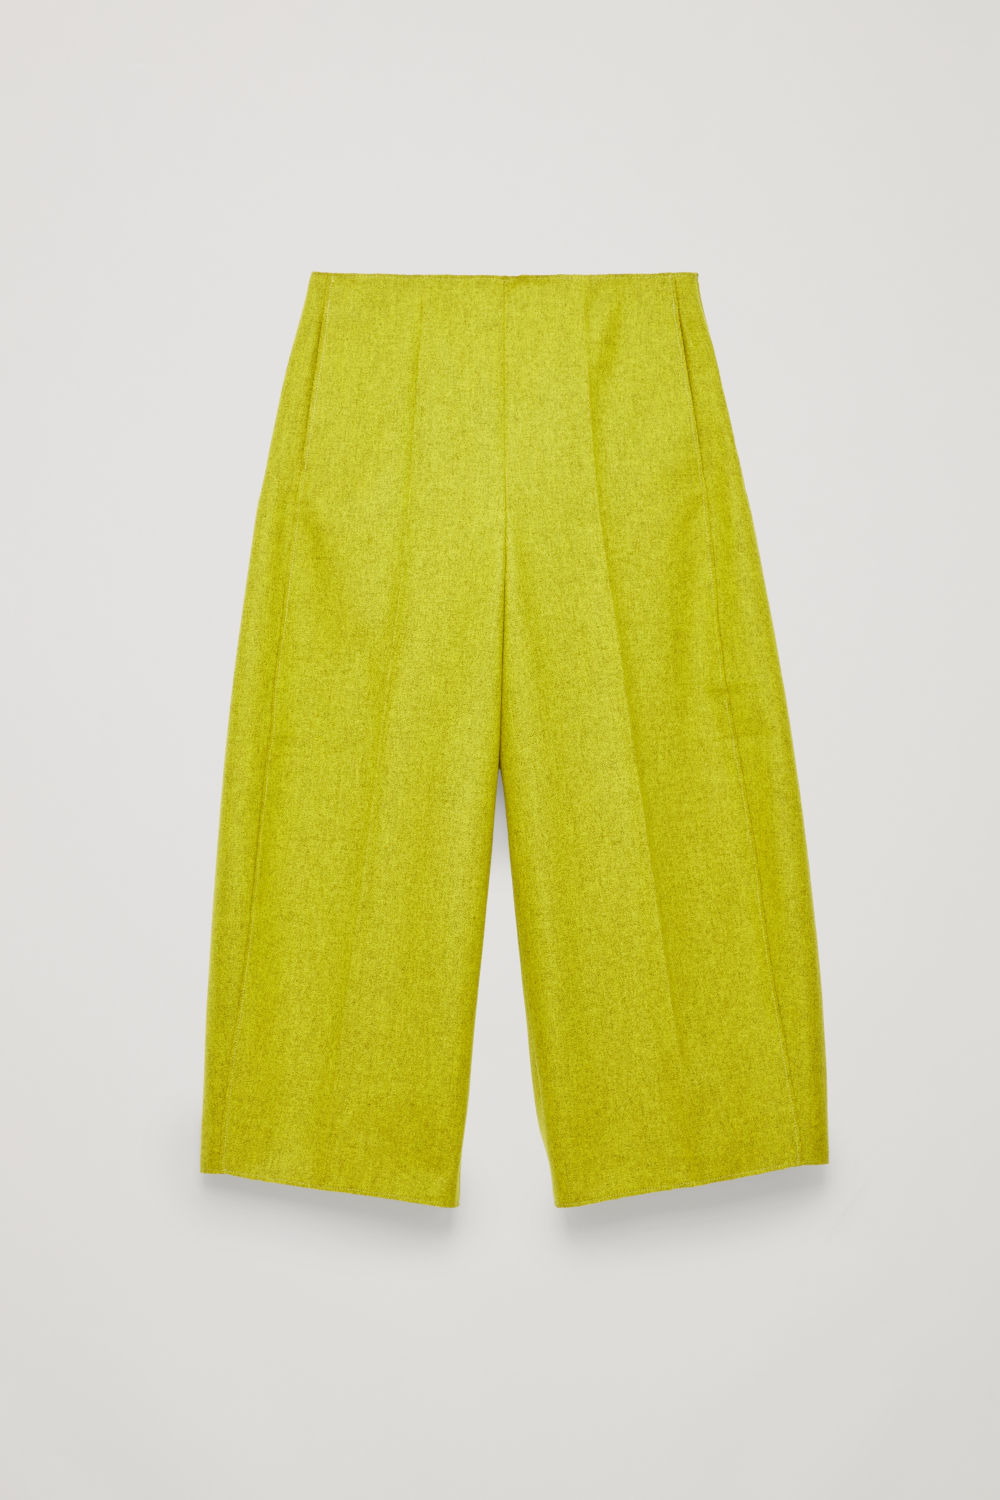 RAW-CUT ROUNDED WOOL CULOTTES